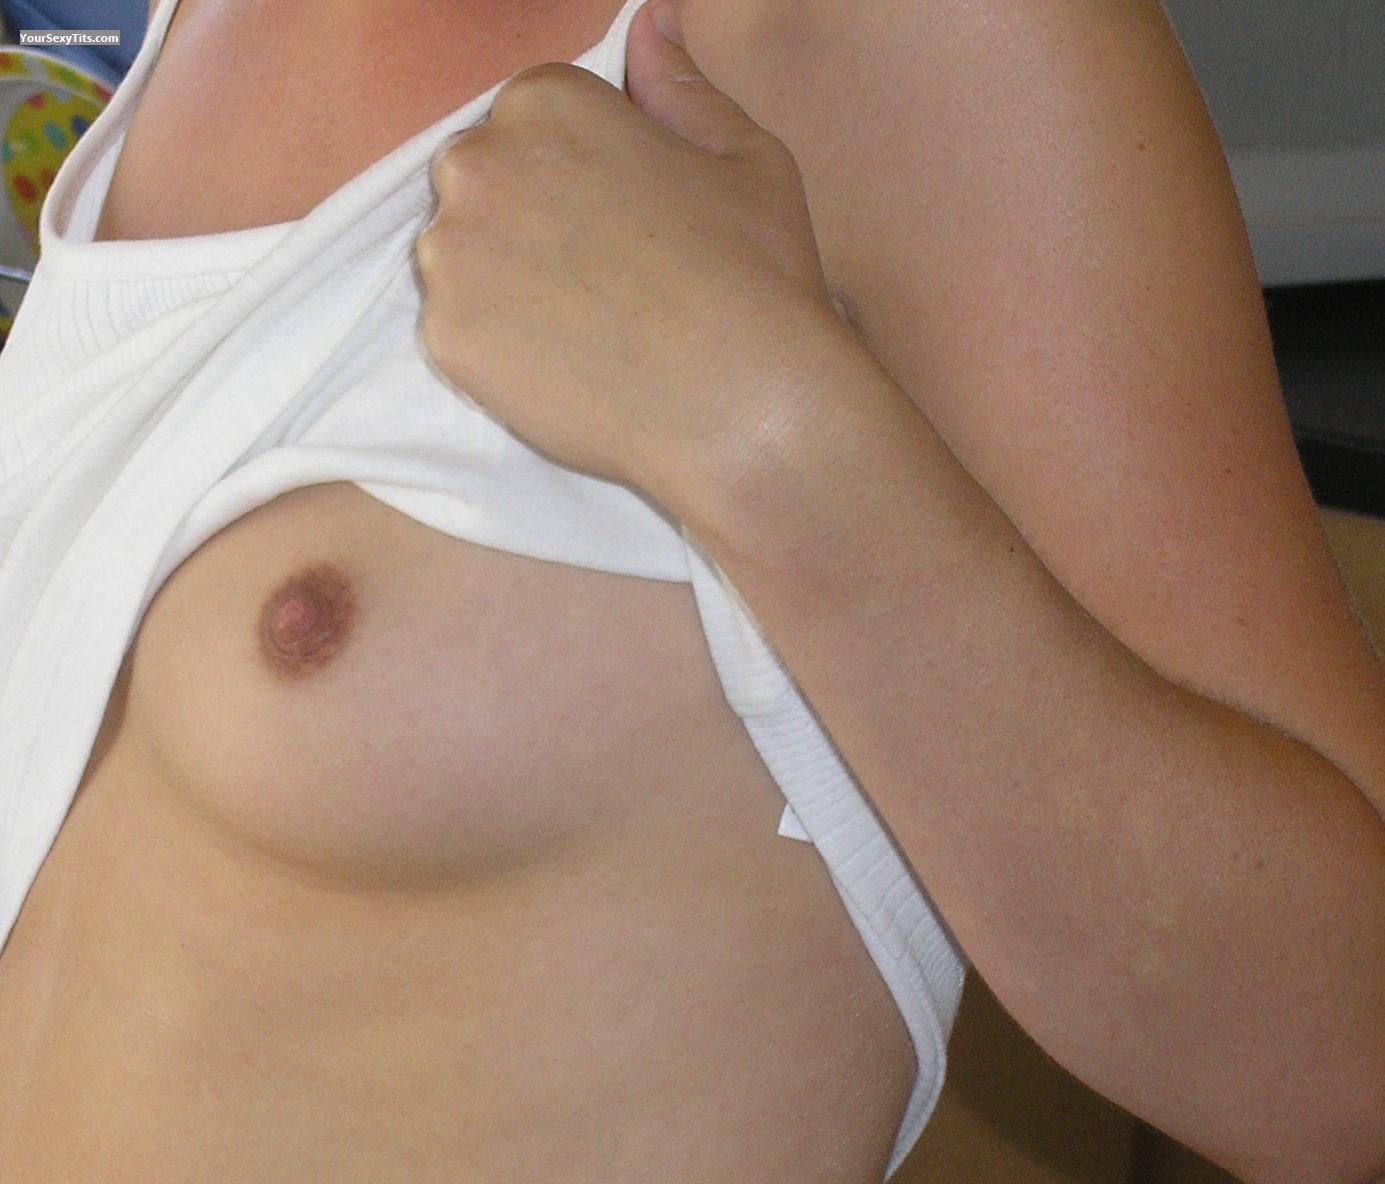 Tit Flash: Small Tits - Sunny from United Kingdom